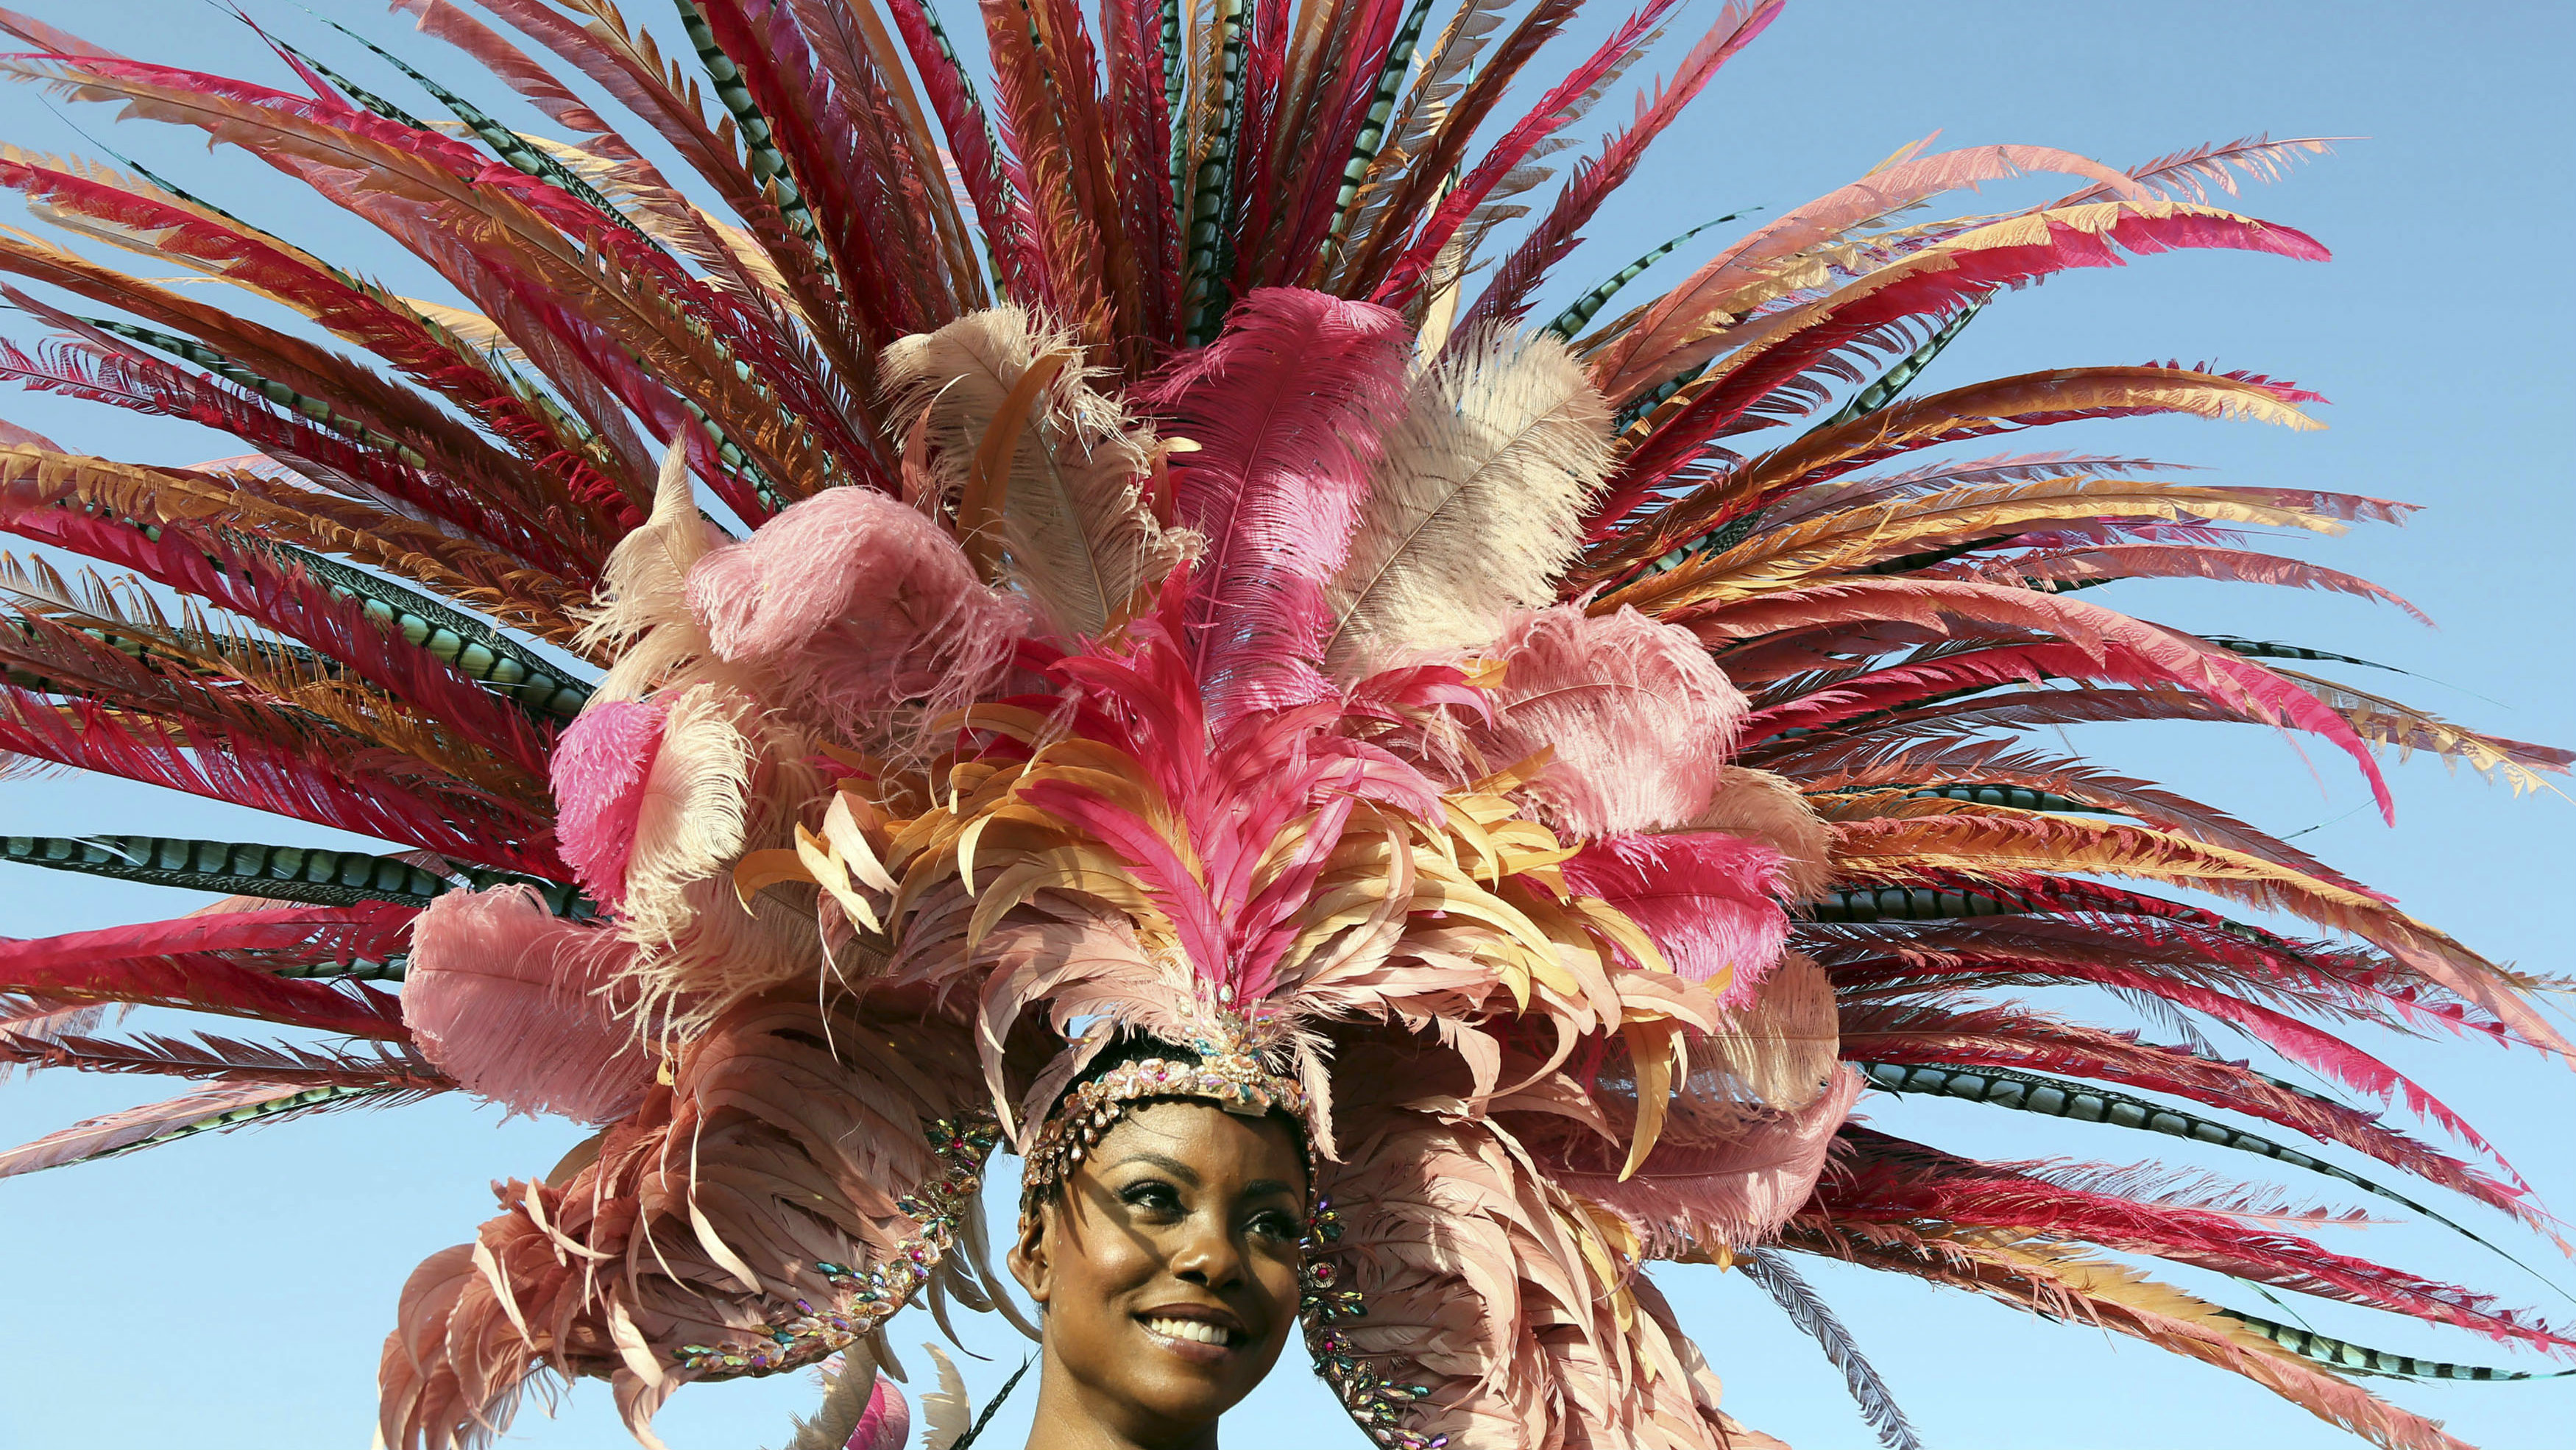 """Trinidad's former Miss Universe Wendy Fitzwilliam performs in an individual mas costume during Hart's Carnival 2014 presentation """"Of Love and War,"""" as the band crosses the stage at the Queen's Park Savannah on the final day of the parade of bands in the annual Carnival festival, in Port-of-Spain, March 4, 2014. REUTERS/Andrea De Silva"""